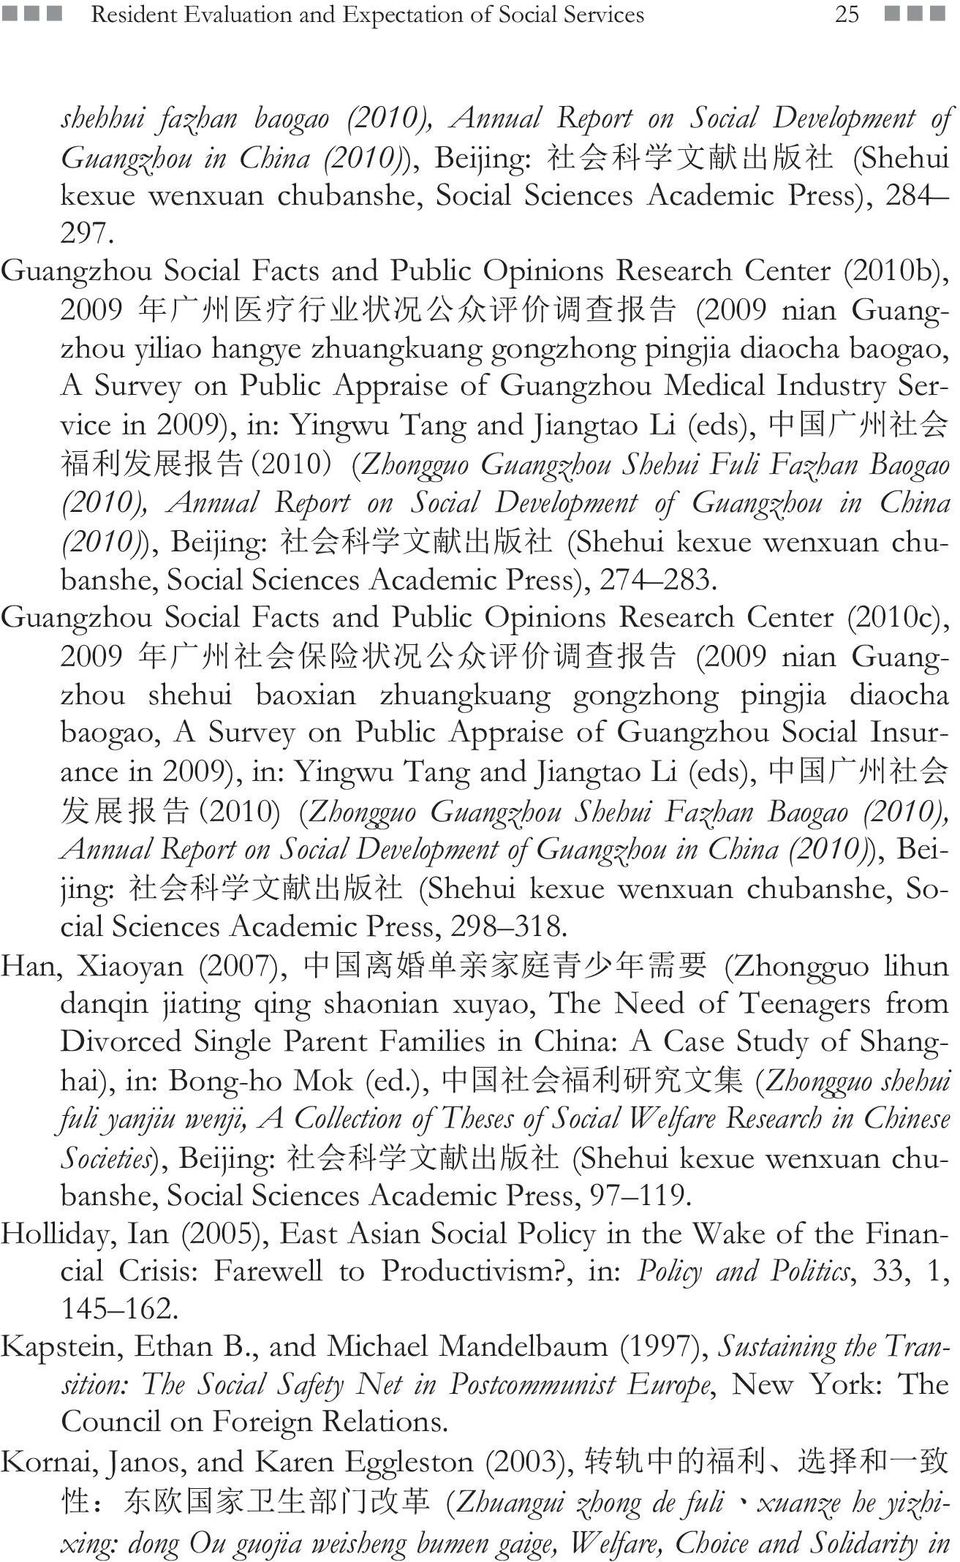 Guangzhou Social Facts and Public Opinions Research Center (2010b), 2009 (2009 nian Guangzhou yiliao hangye zhuangkuang gongzhong pingjia diaocha baogao, A Survey on Public Appraise of Guangzhou